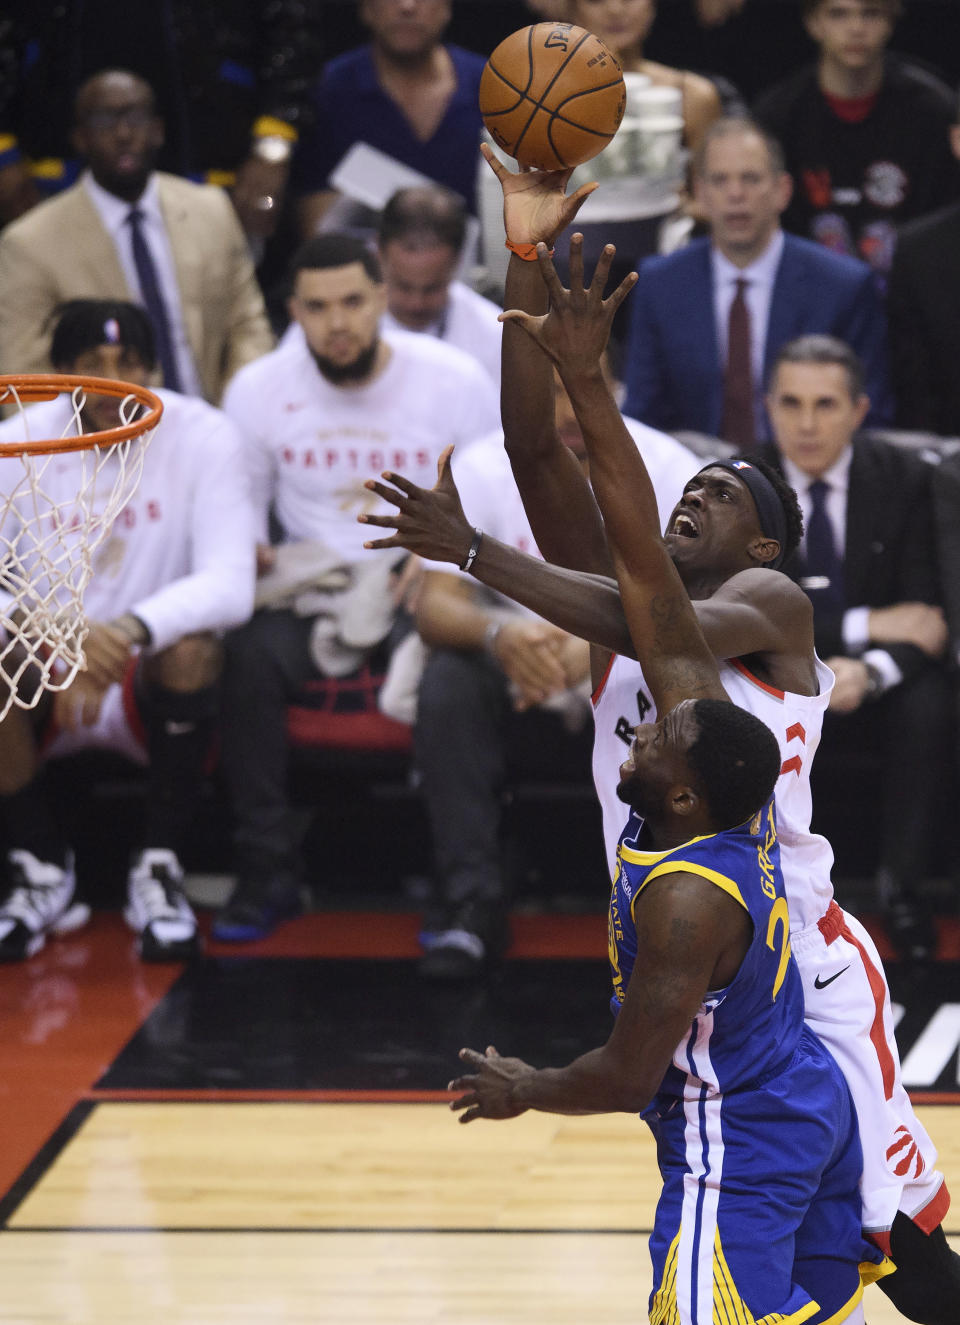 Toronto Raptors forward Pascal Siakam (43) drives to the net against Golden State Warriors forward Draymond Green (23) during first half NBA championship basketball finals action in Toronto on Thursday, May 30, 2019. (Nathan Denette/The Canadian Press via AP)